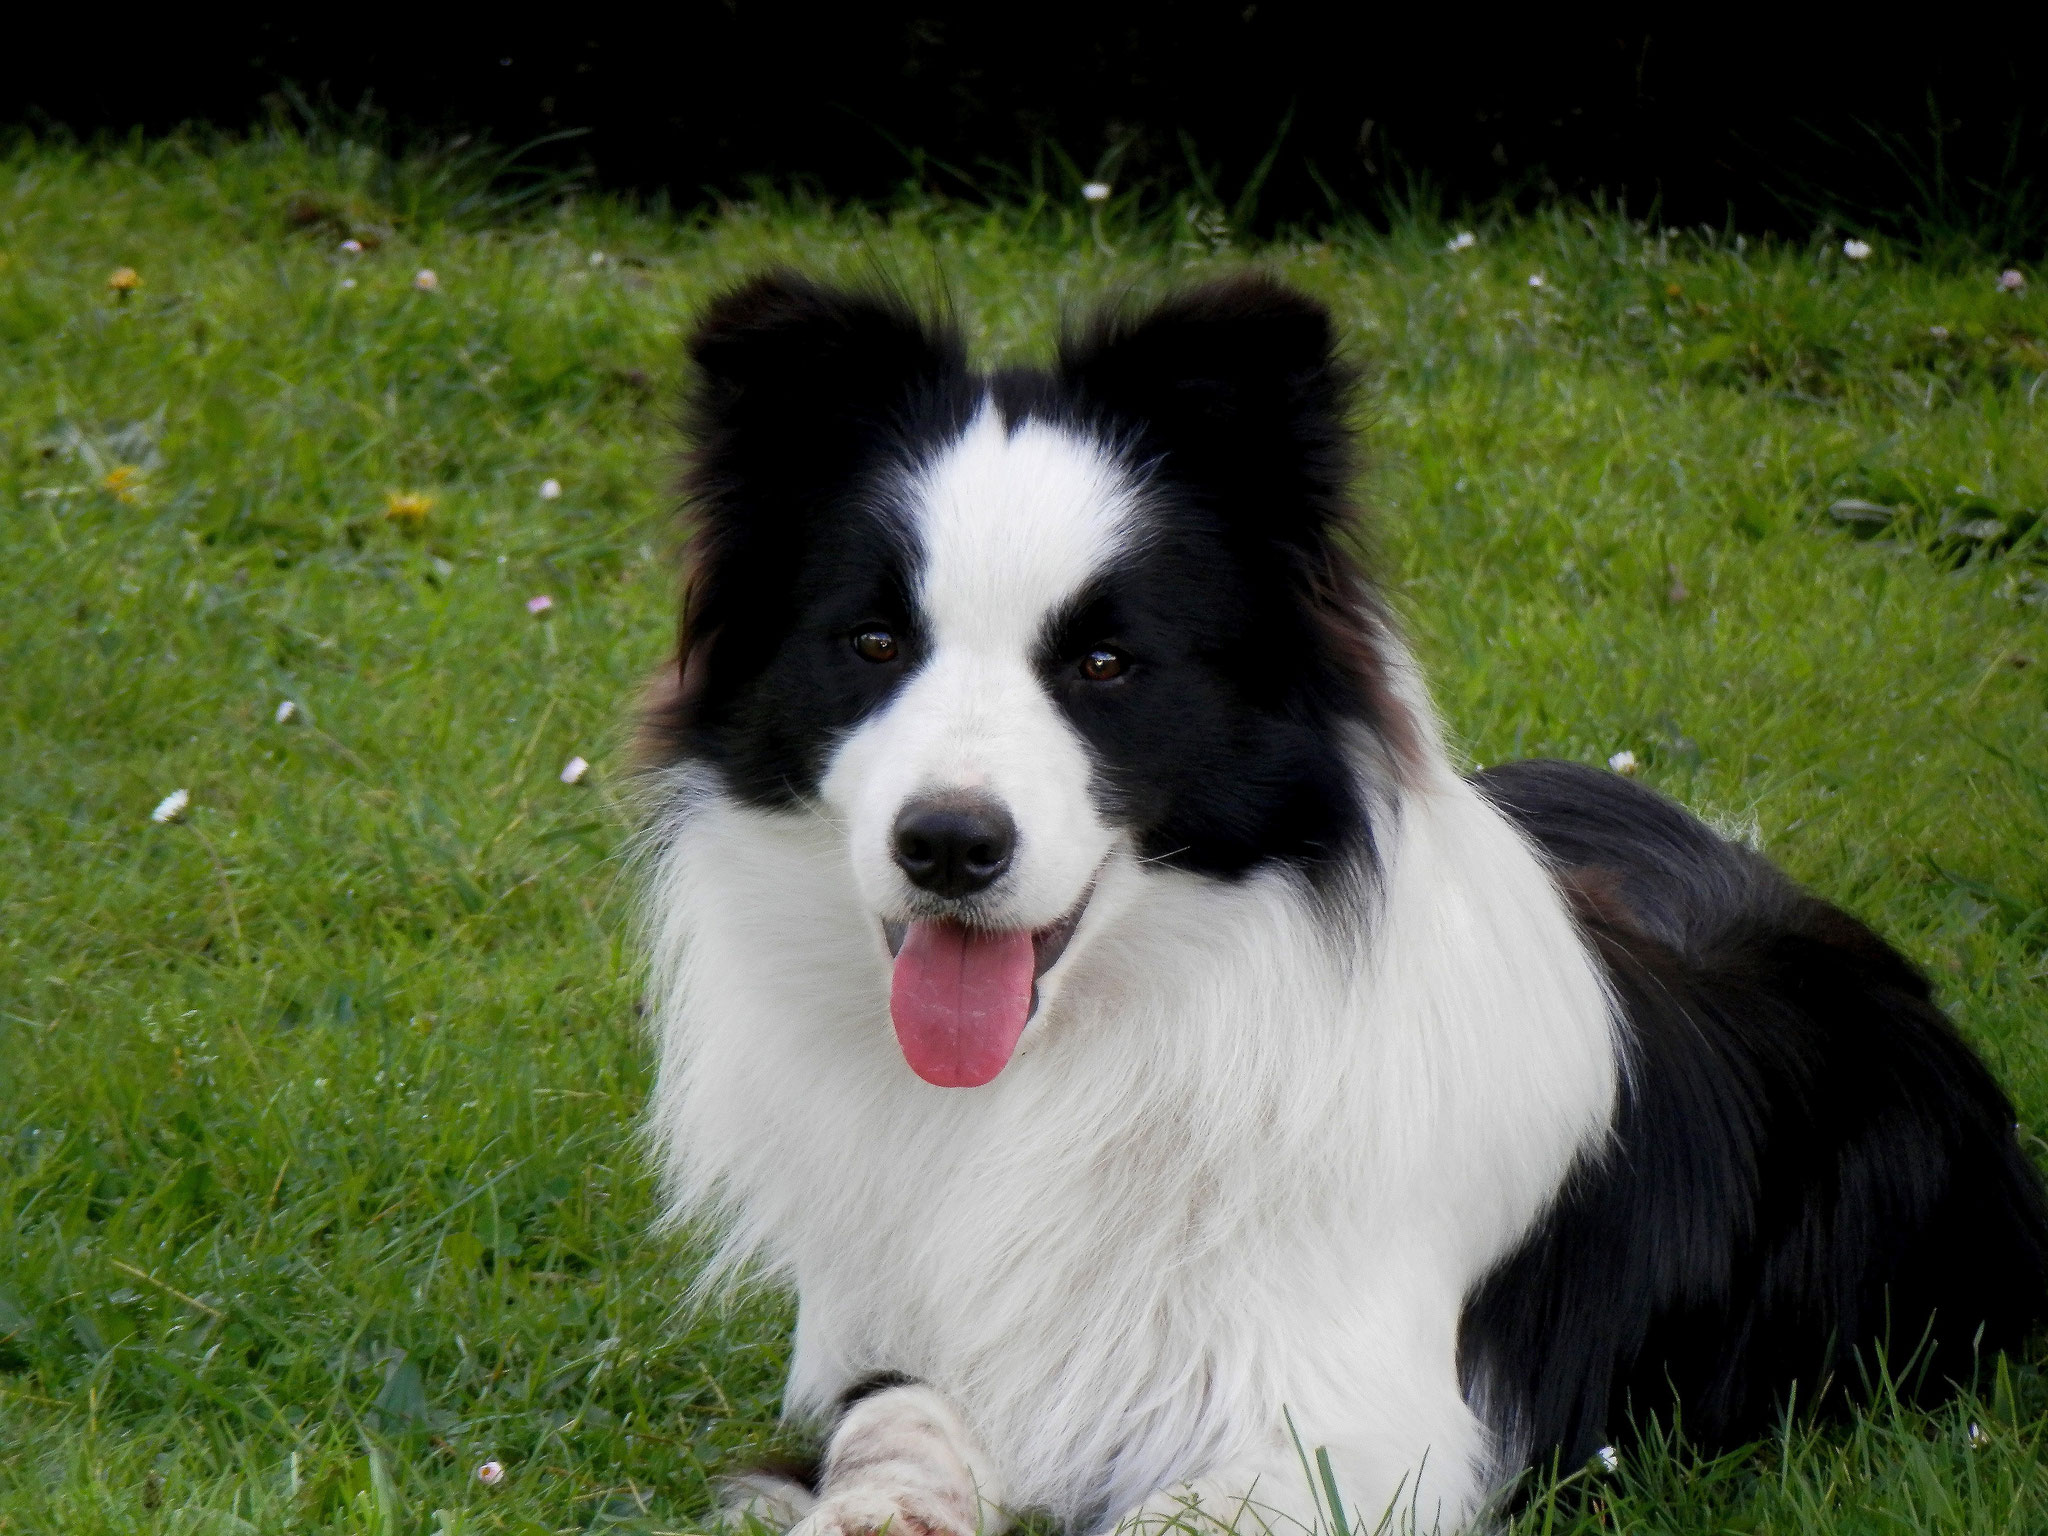 D B Farm Border Collies Criadores de Border Co...